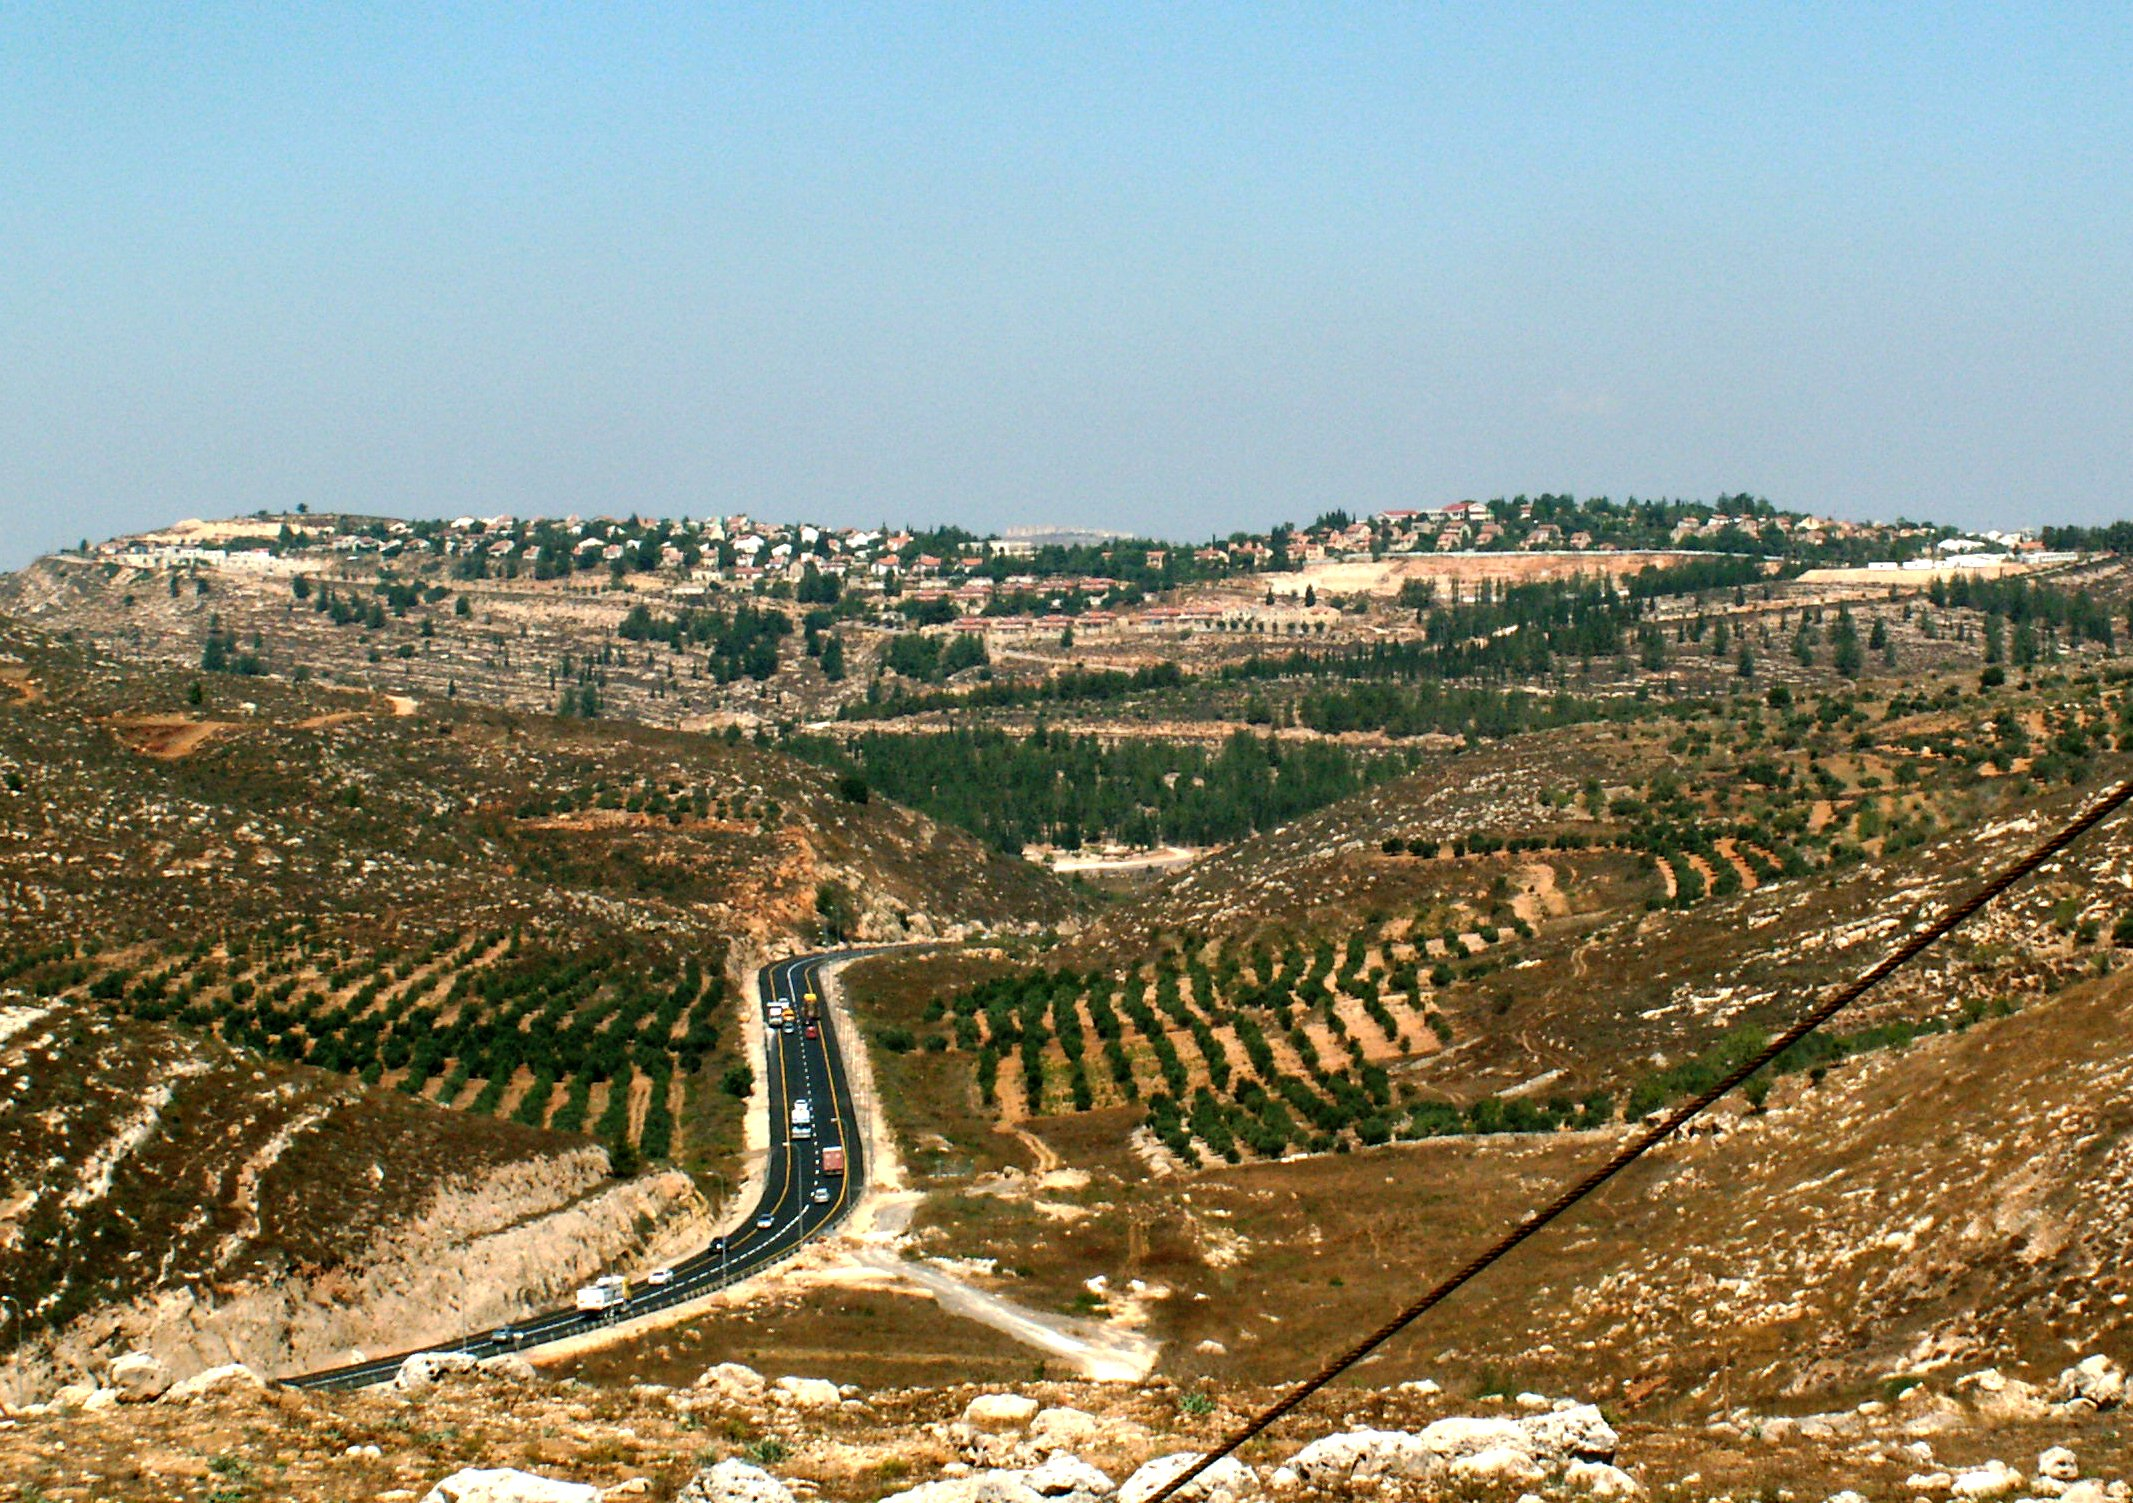 The settlement of Eli